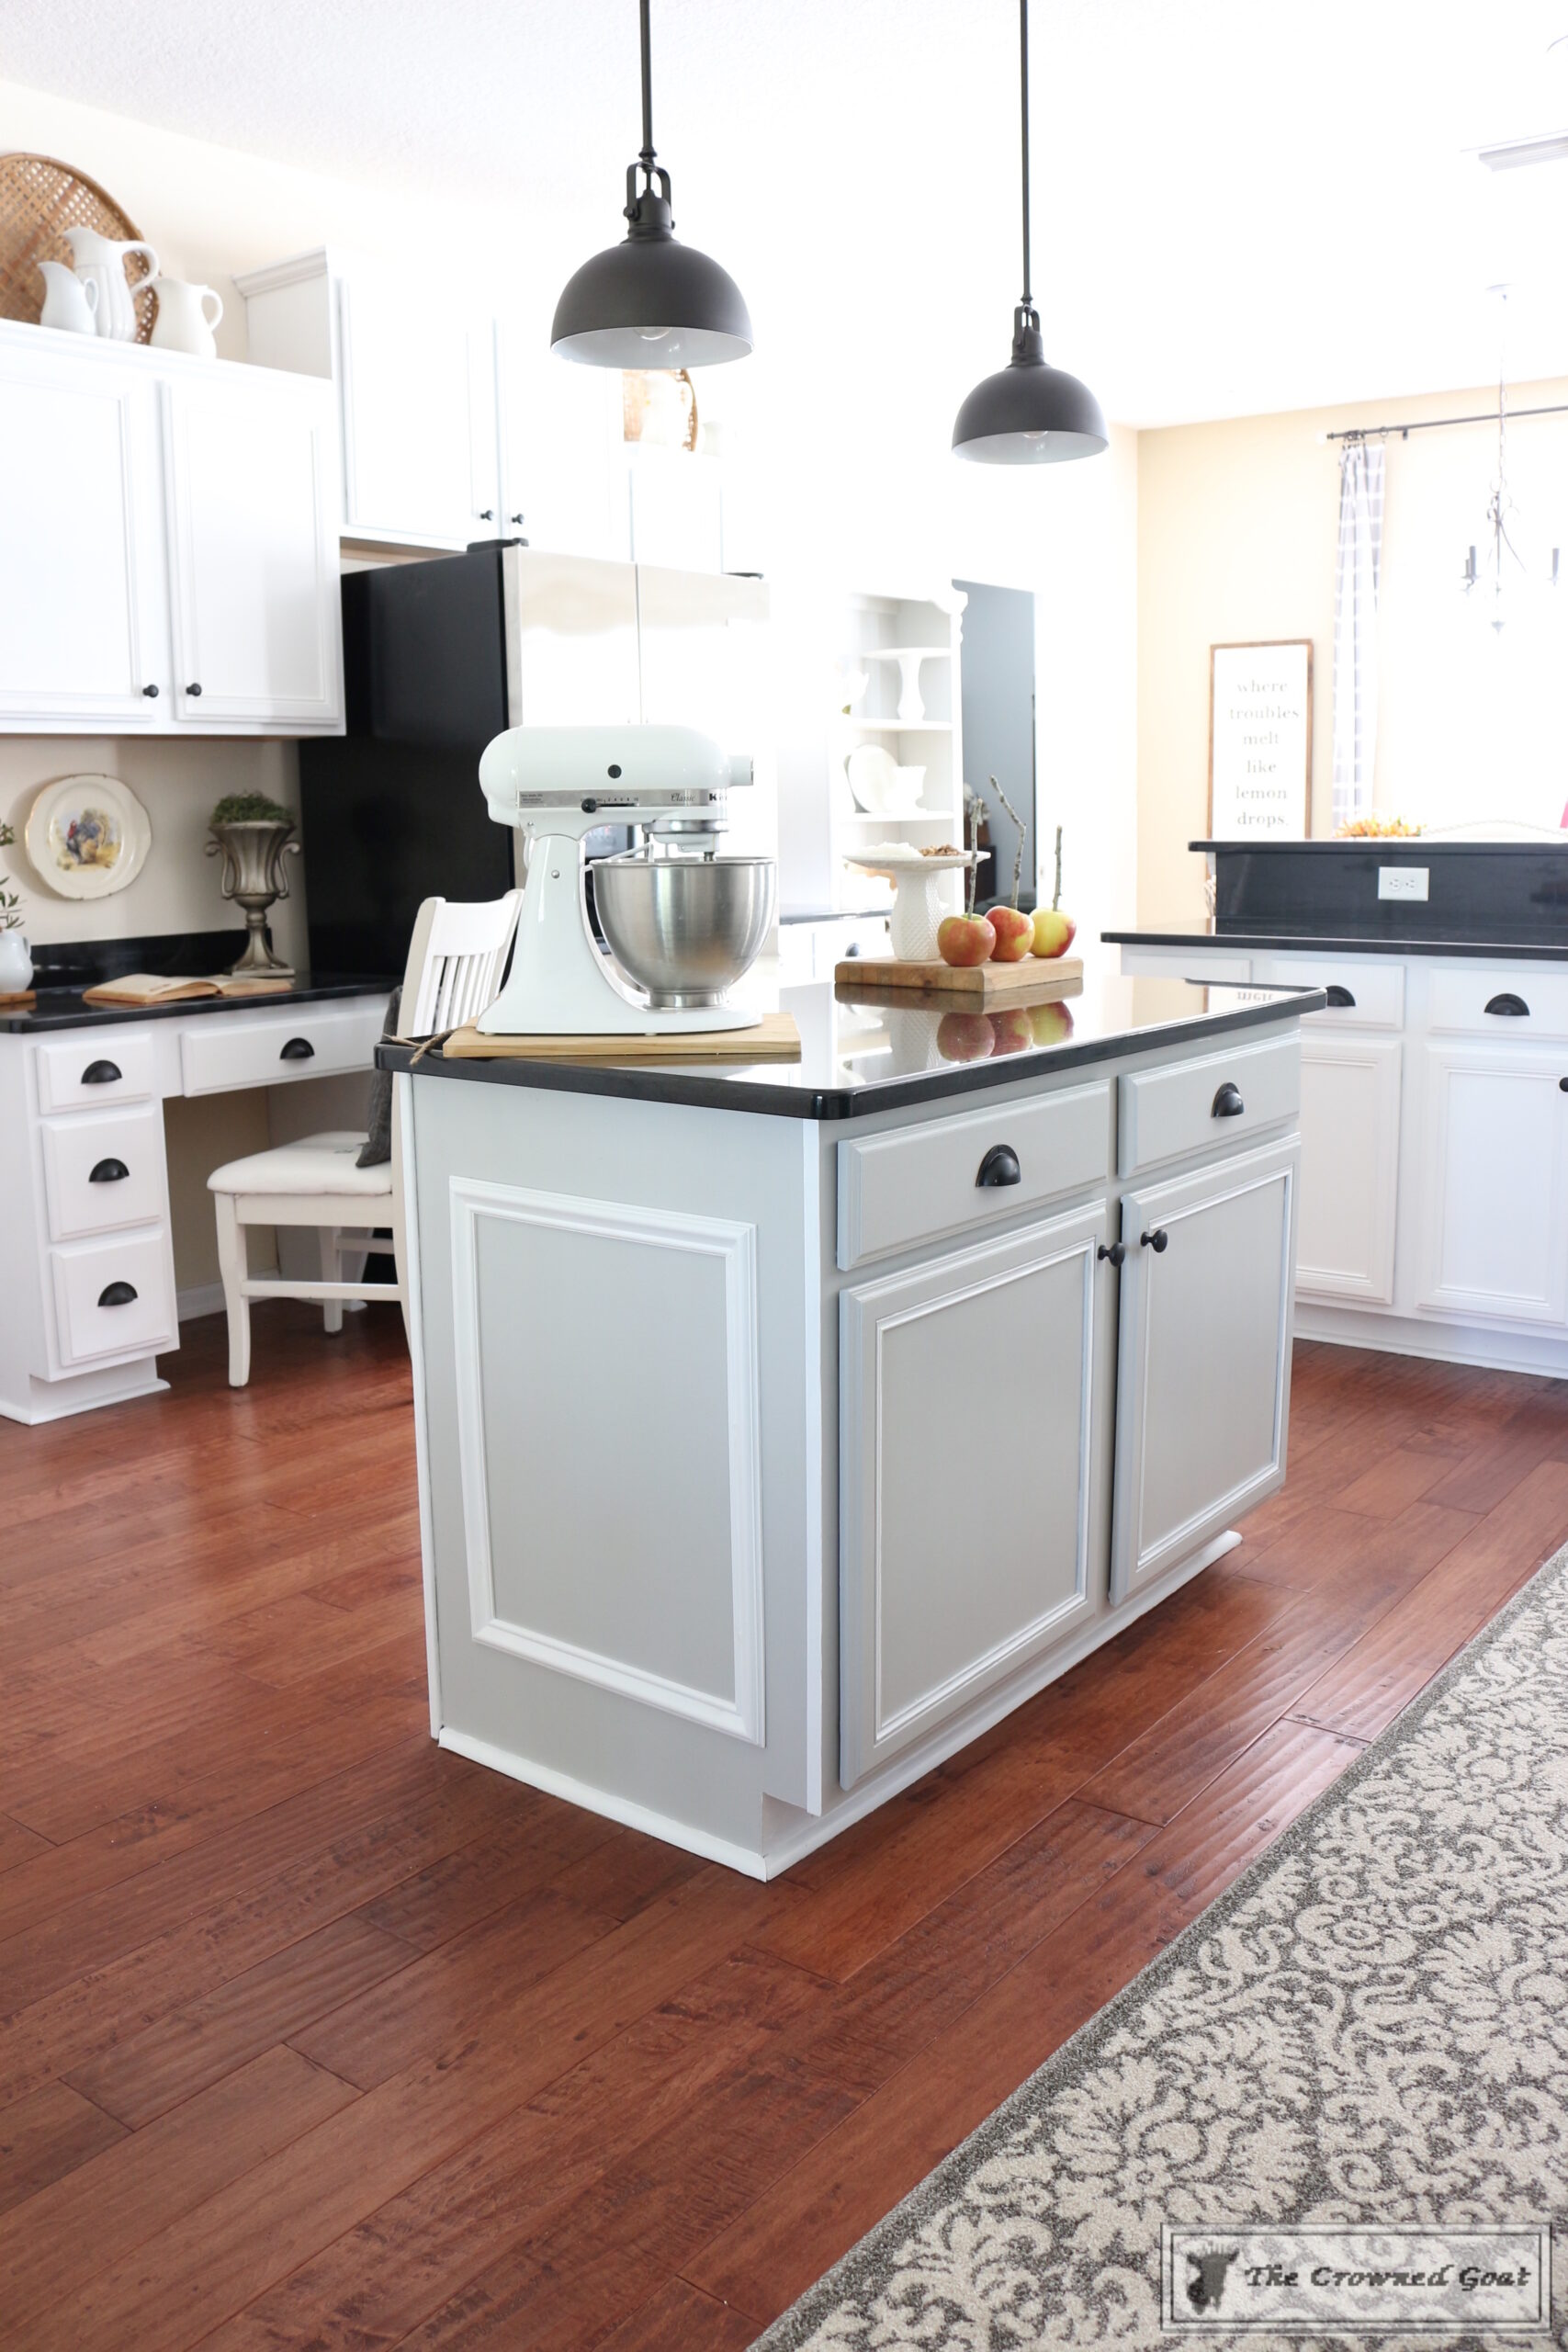 10 Easy Ways to Save Money on a Kitchen Makeover